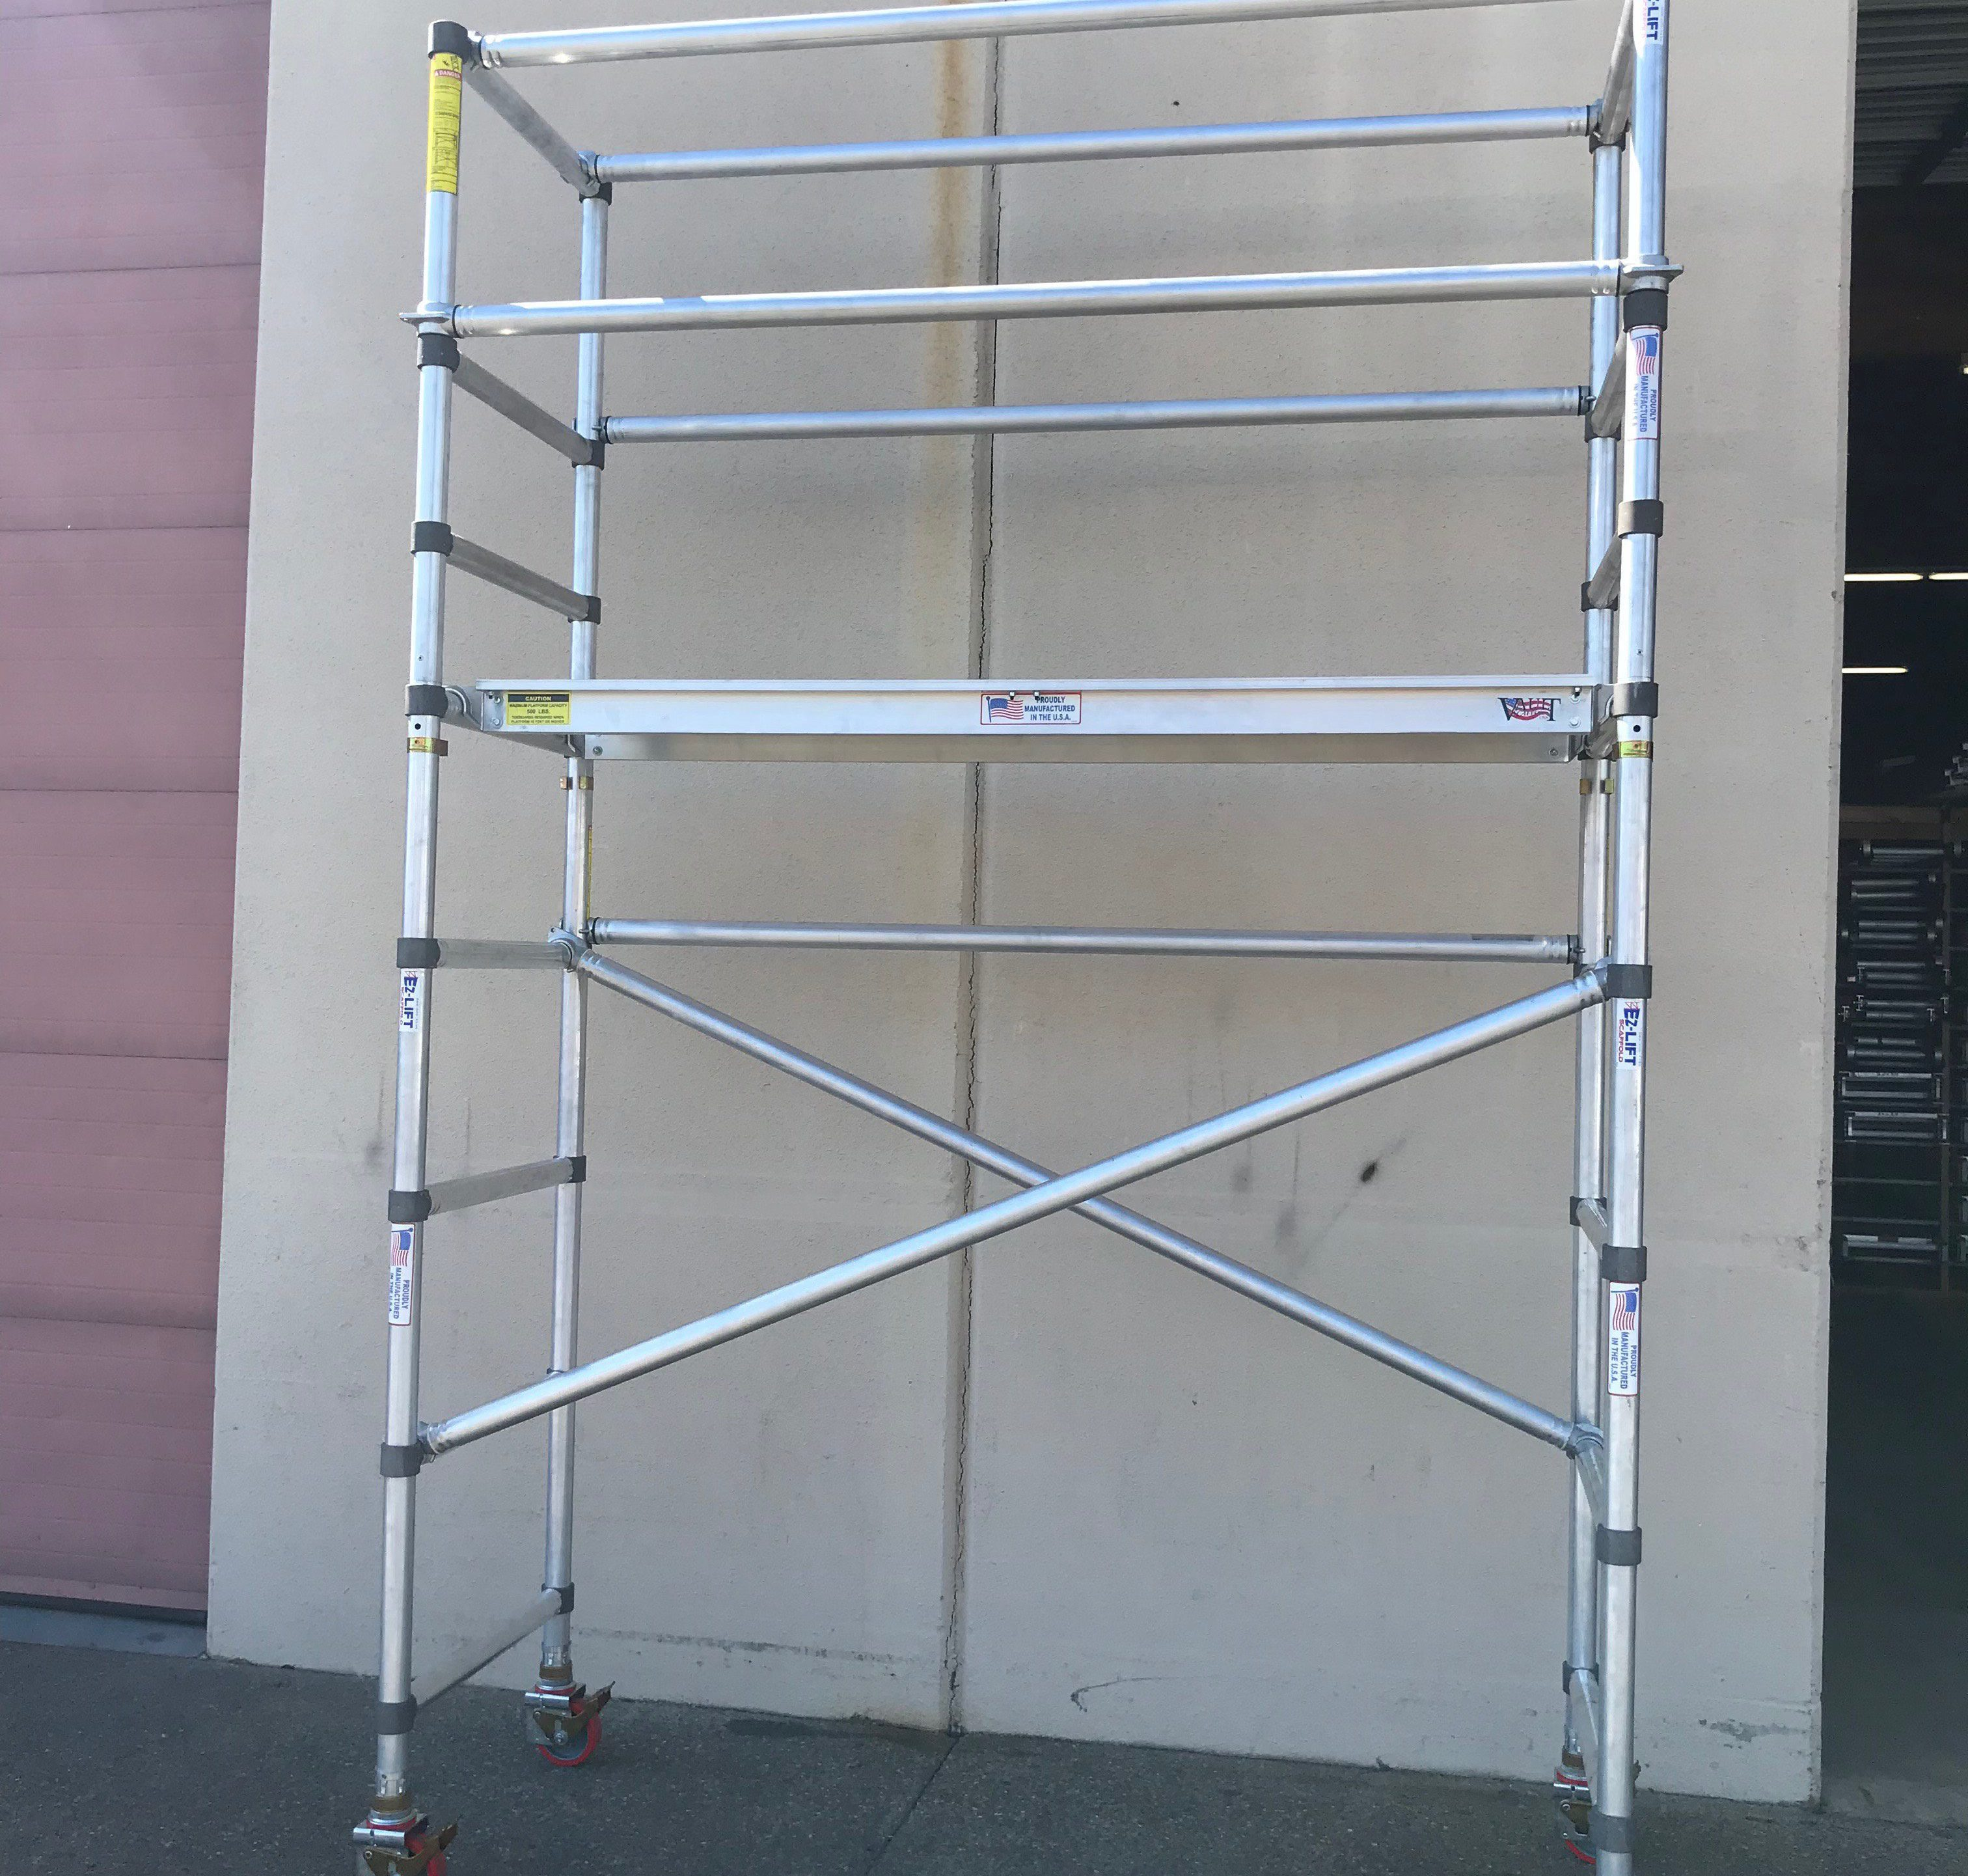 stability services scaffold toronto scaffolding interior nuera training